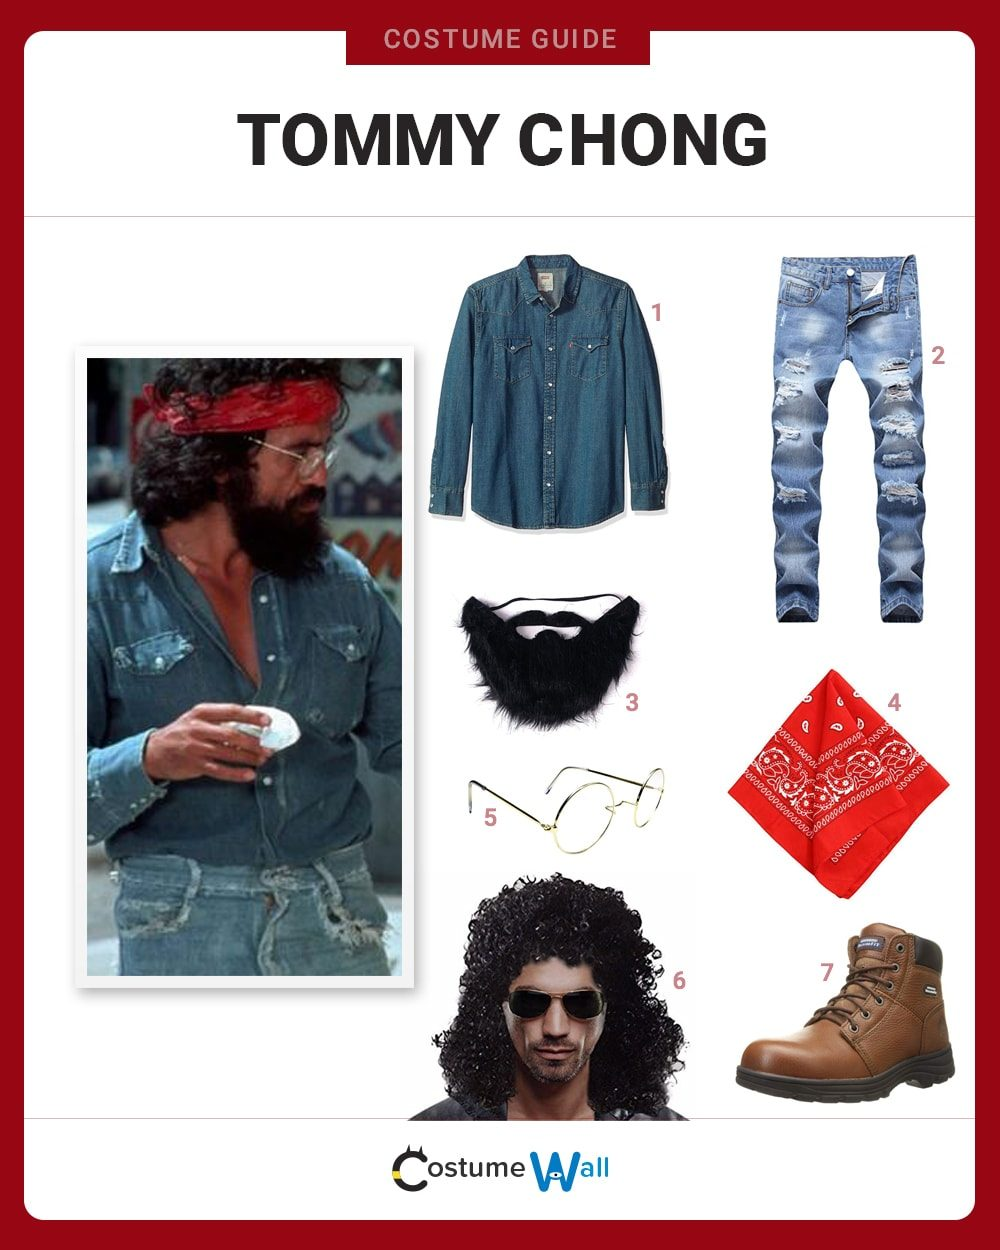 Tommy Chong Costume Guide